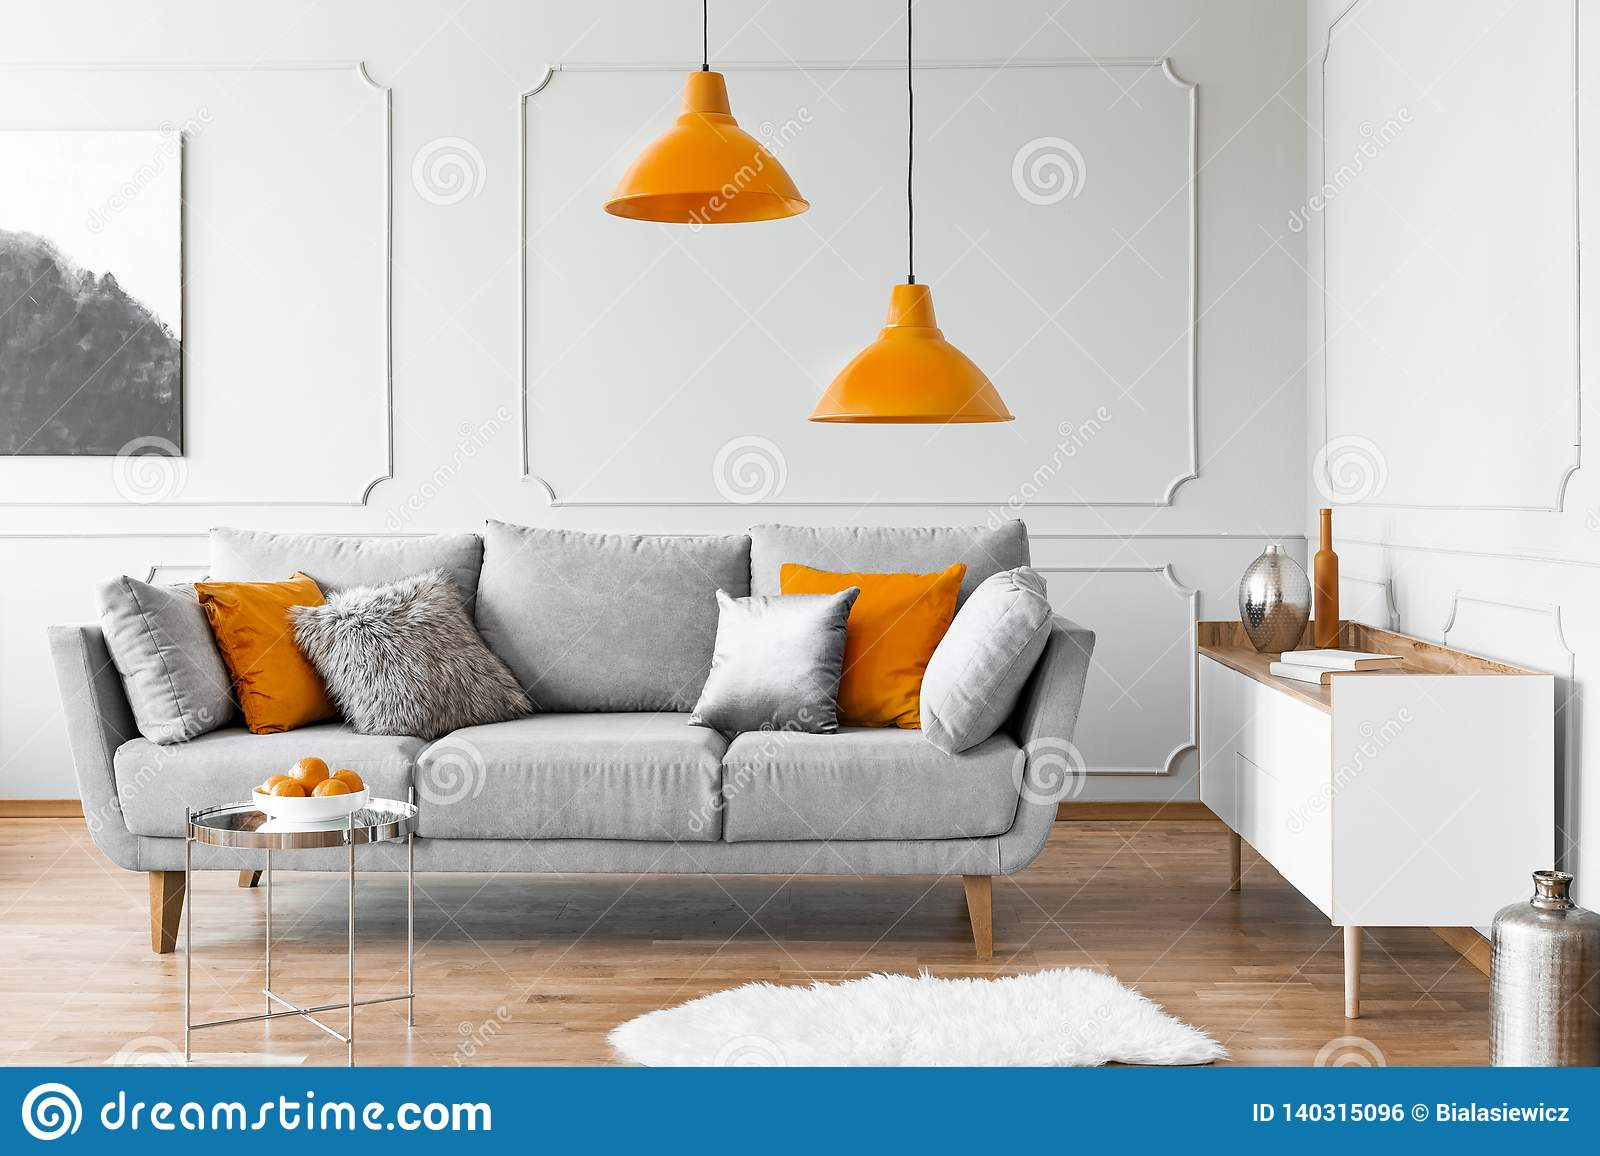 Admirable Two Orange Lamps Above Grey Scandinavian Couch With Pillows Dailytribune Chair Design For Home Dailytribuneorg